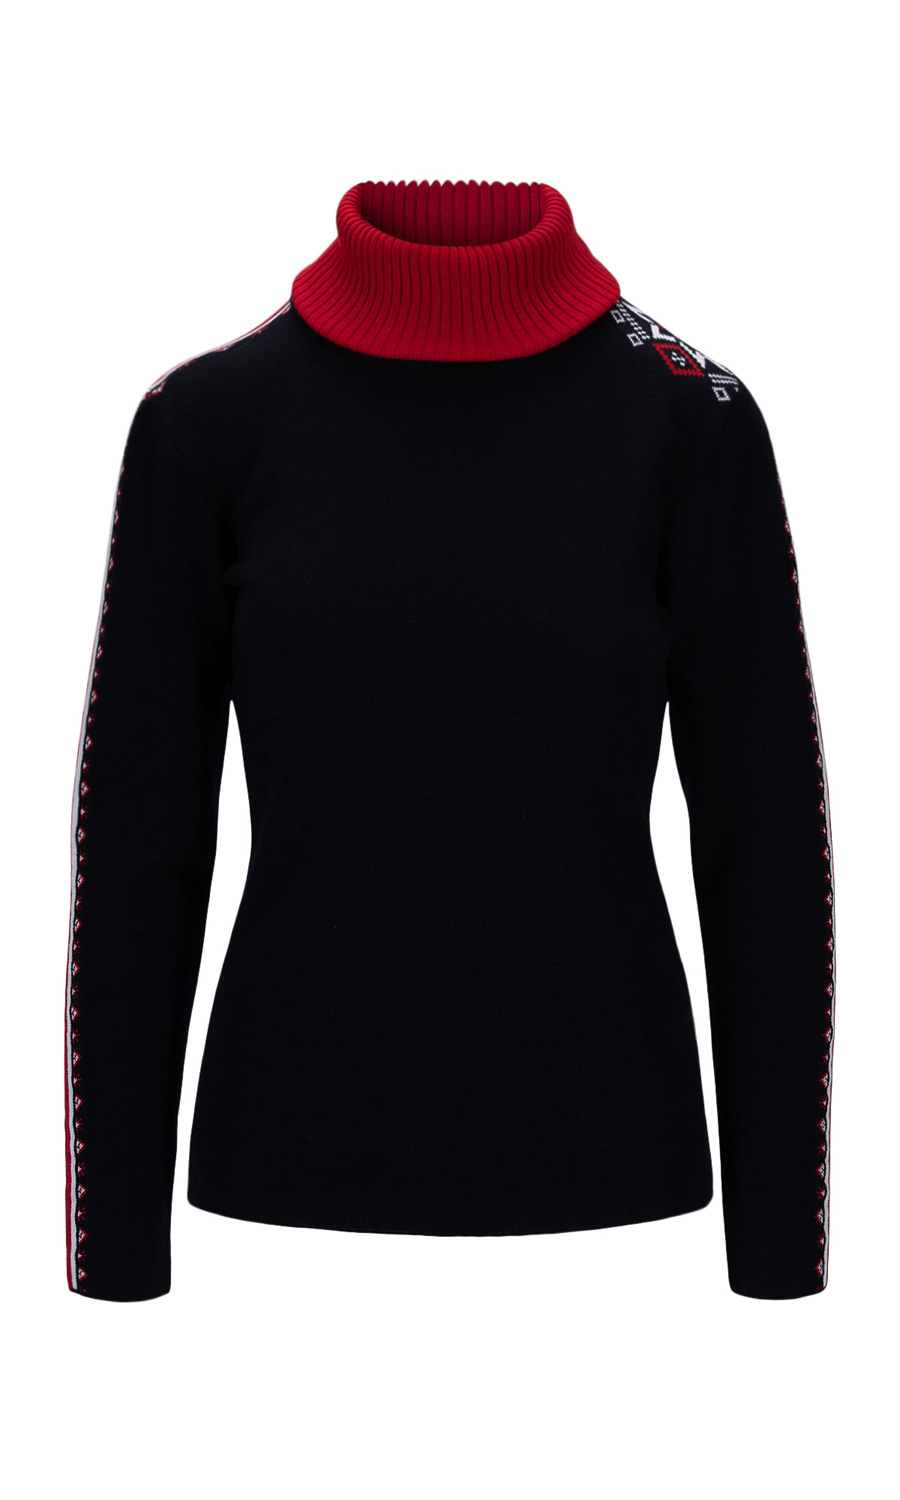 Dale of Norway Sweater – Mount Aire Sweater